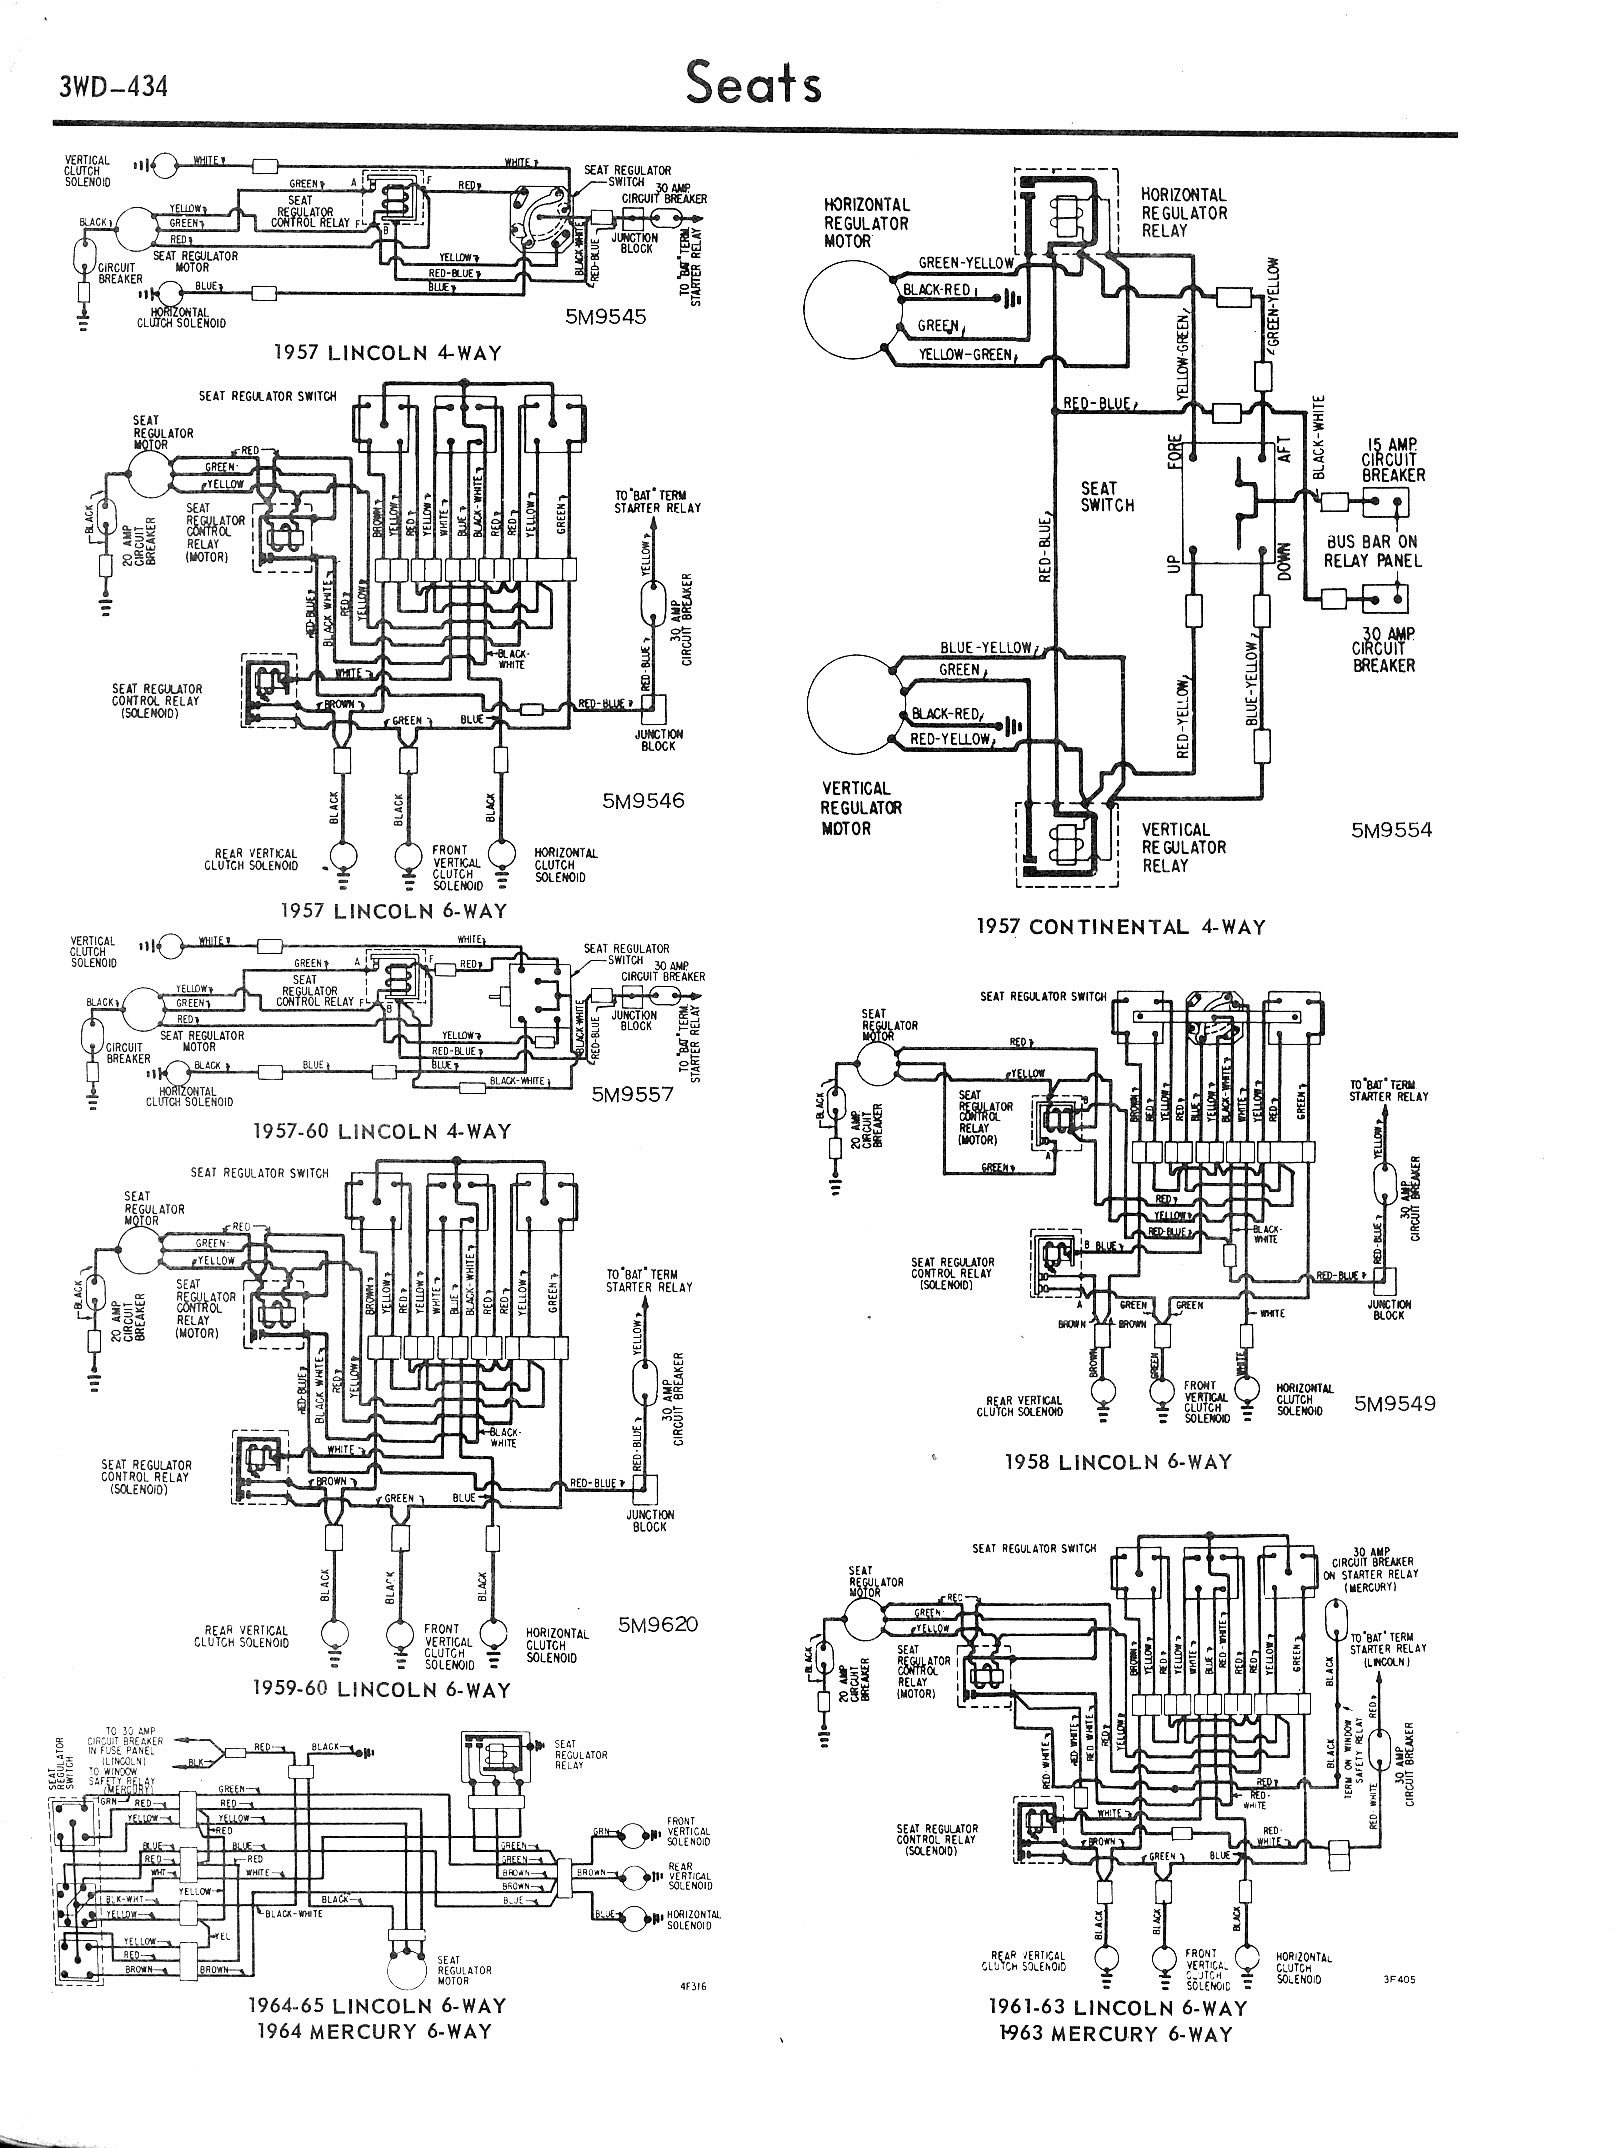 Ford Diagrams 1964 1 2 Mustang Wiring 57 65 Lincoln 4 Way 6 Continental 63 64 Mercury